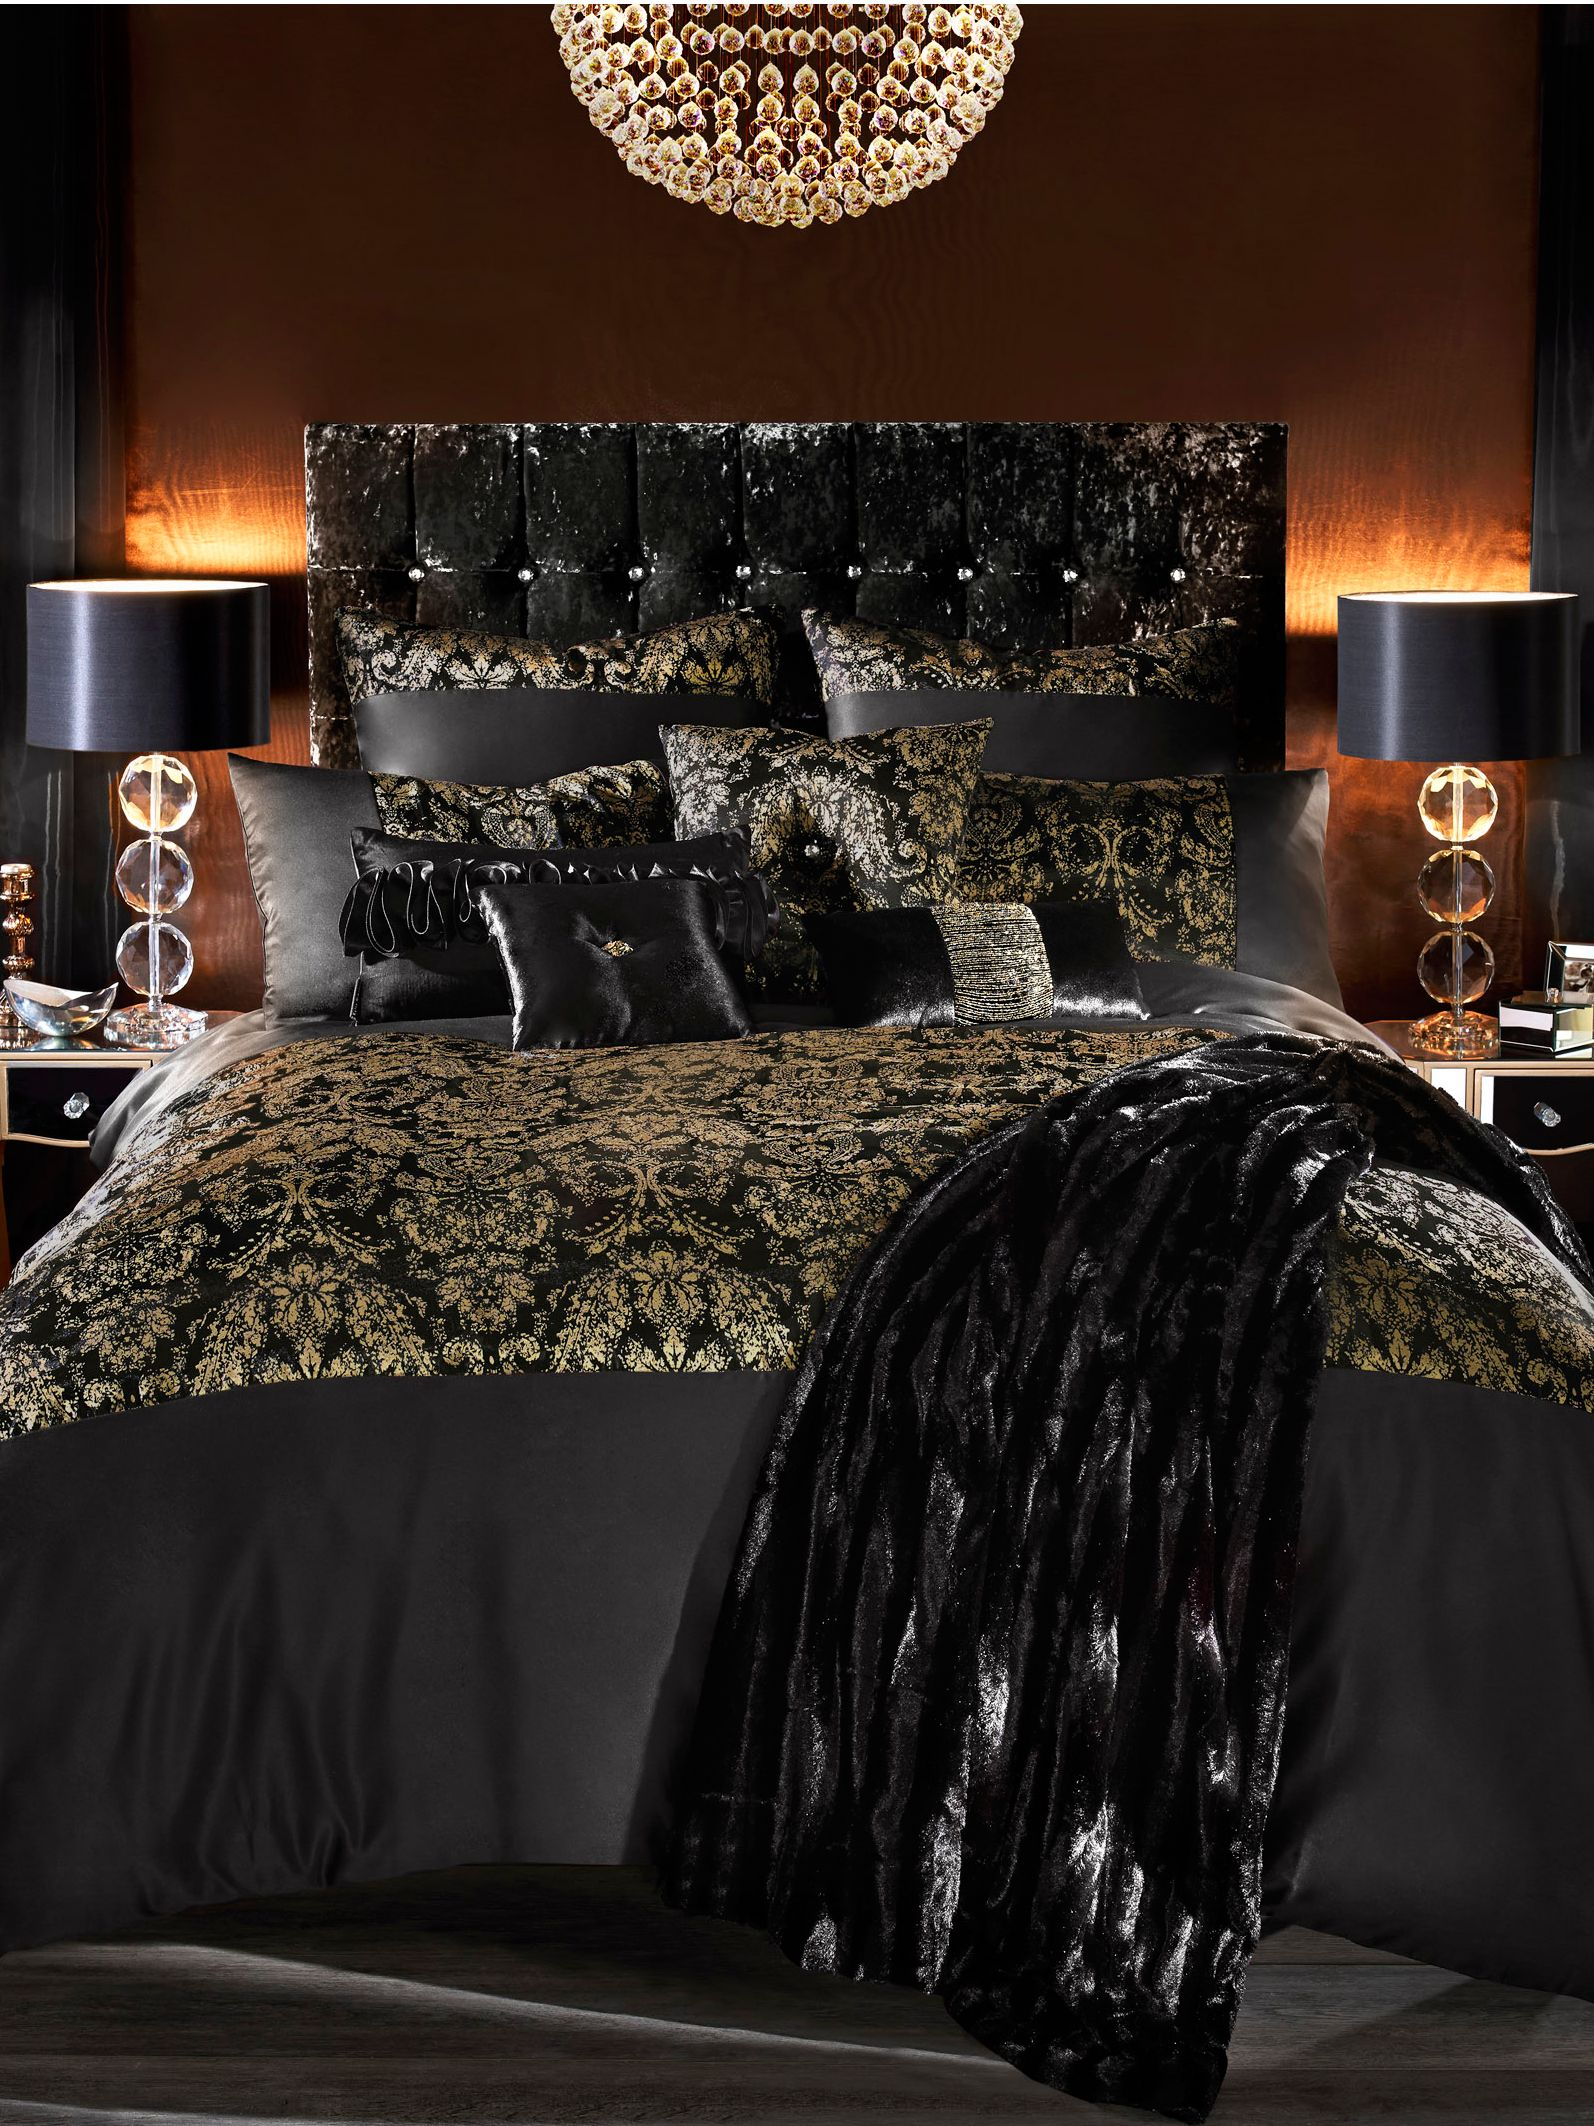 Alondra single duvet cover in black and gold